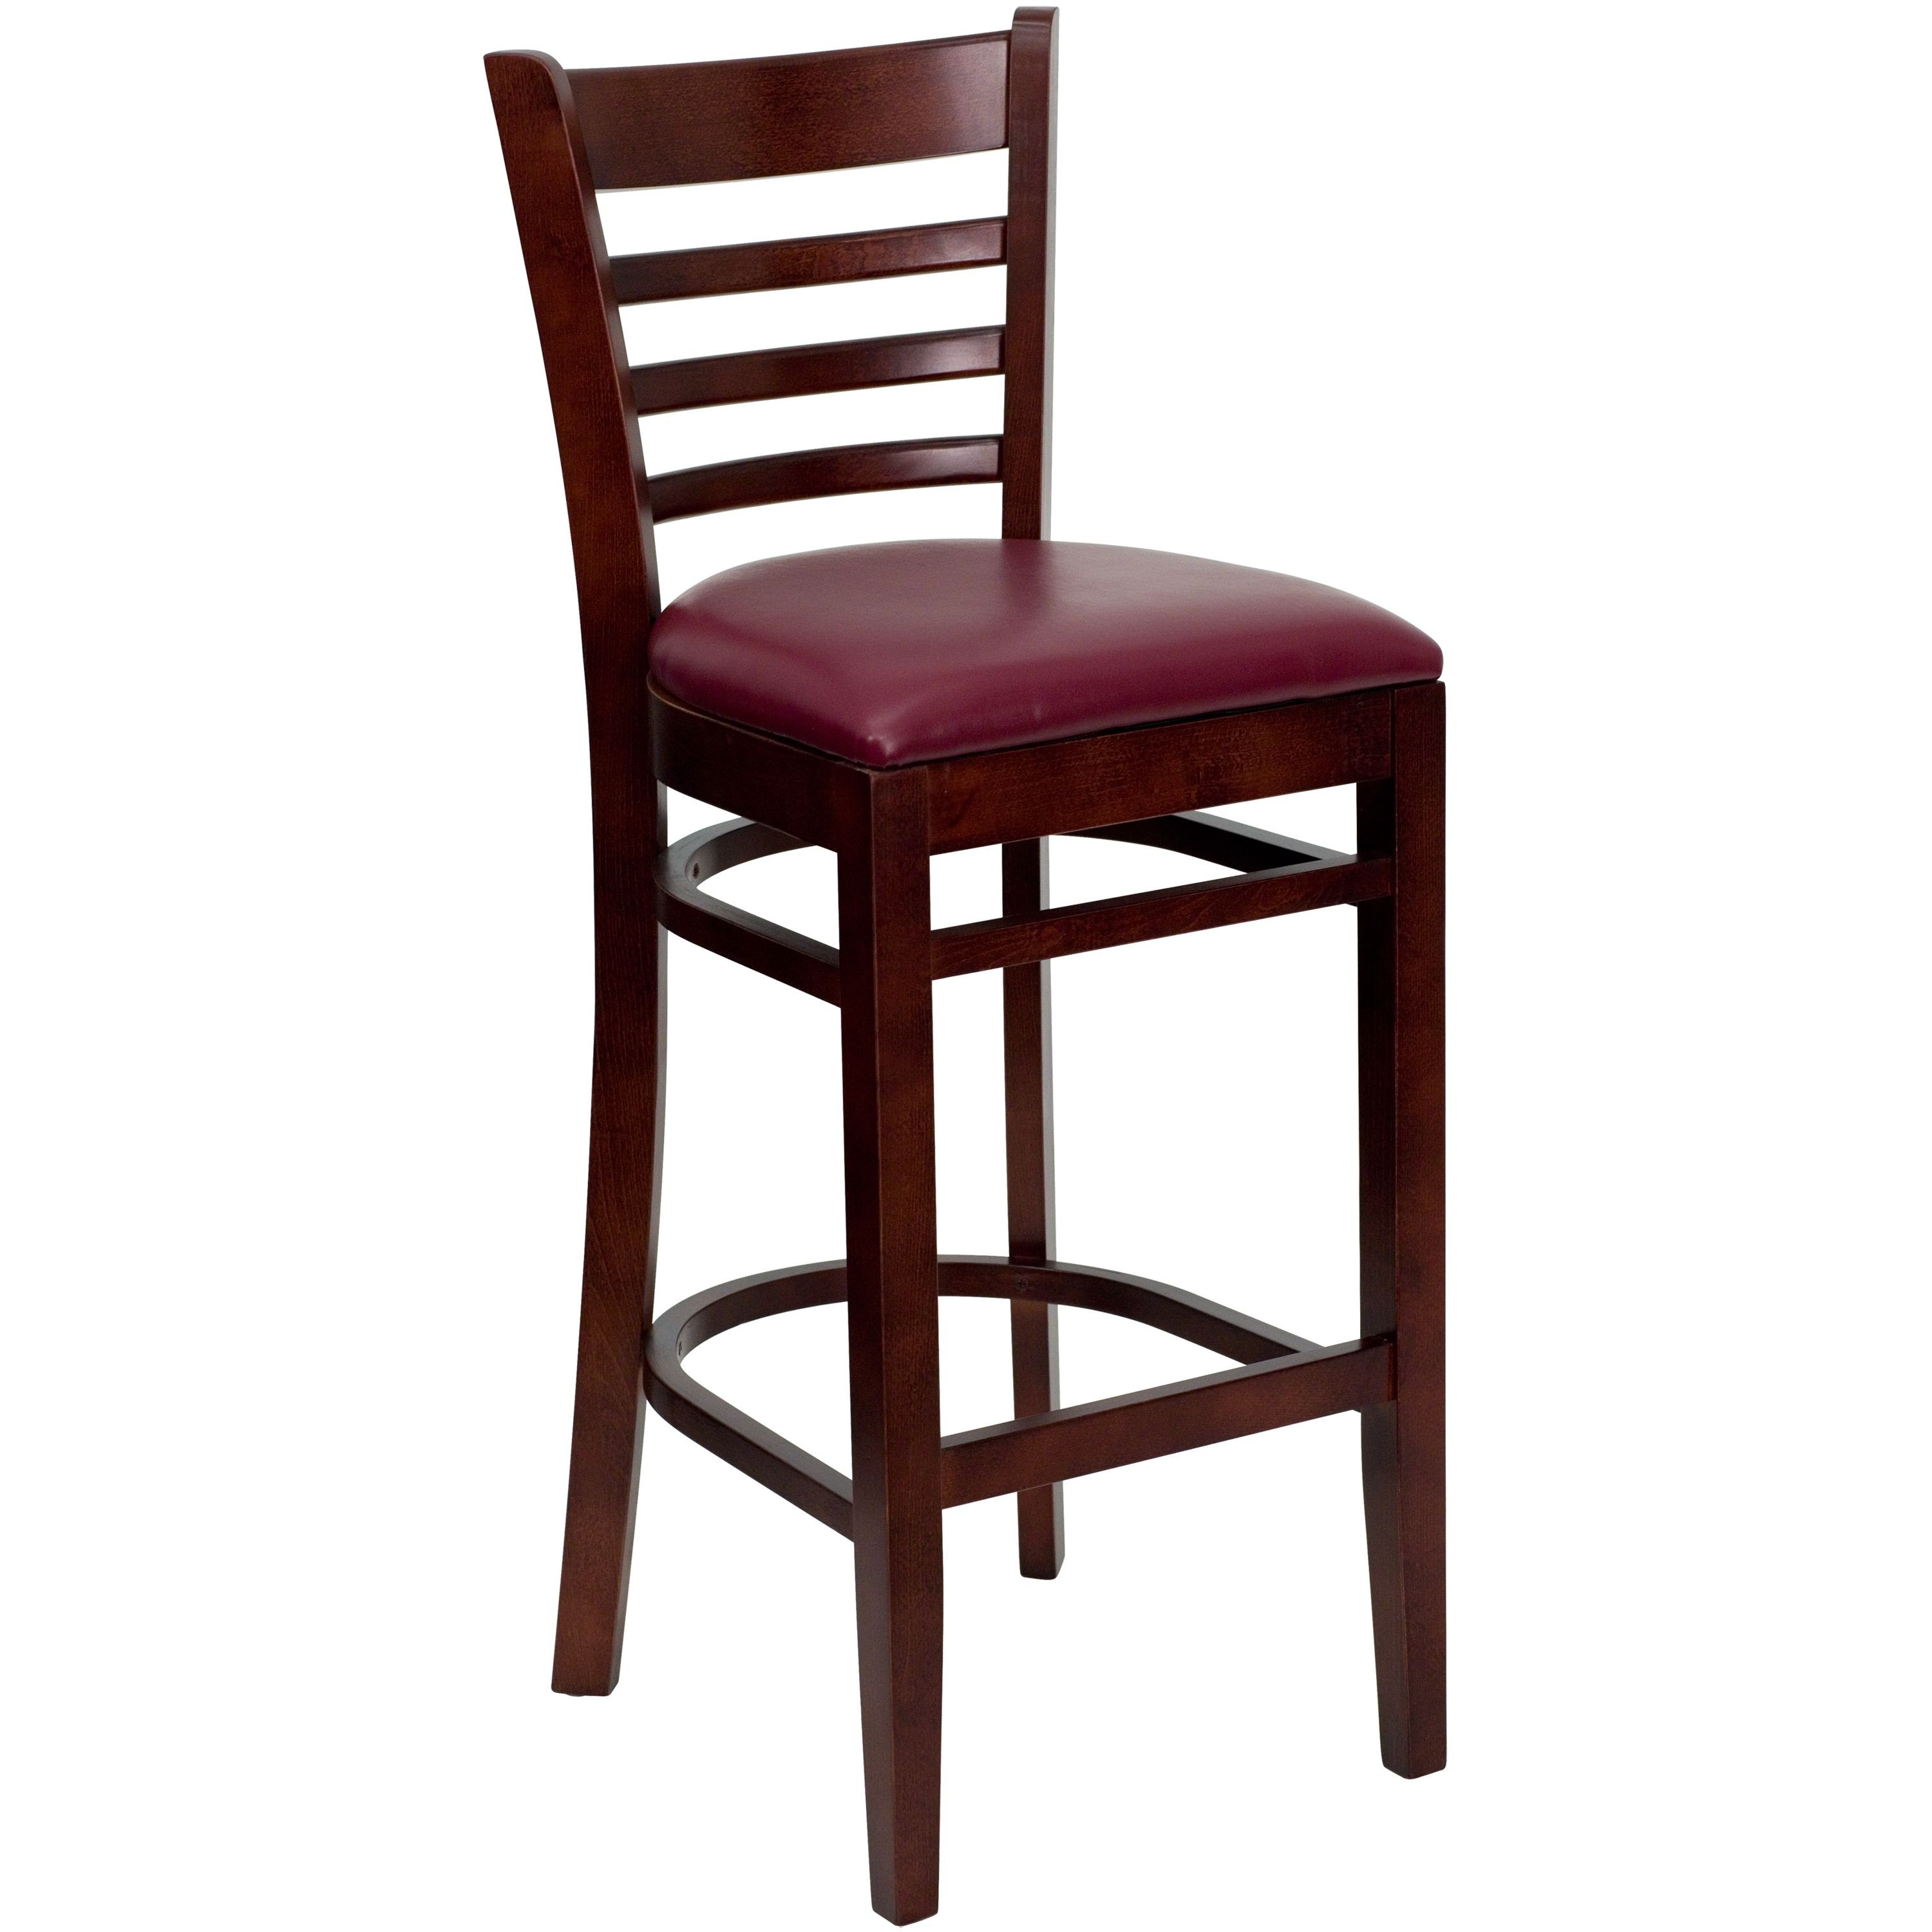 Ladder Back Mahogany Wood Bar Stool with Burgundy Vinyl Seat